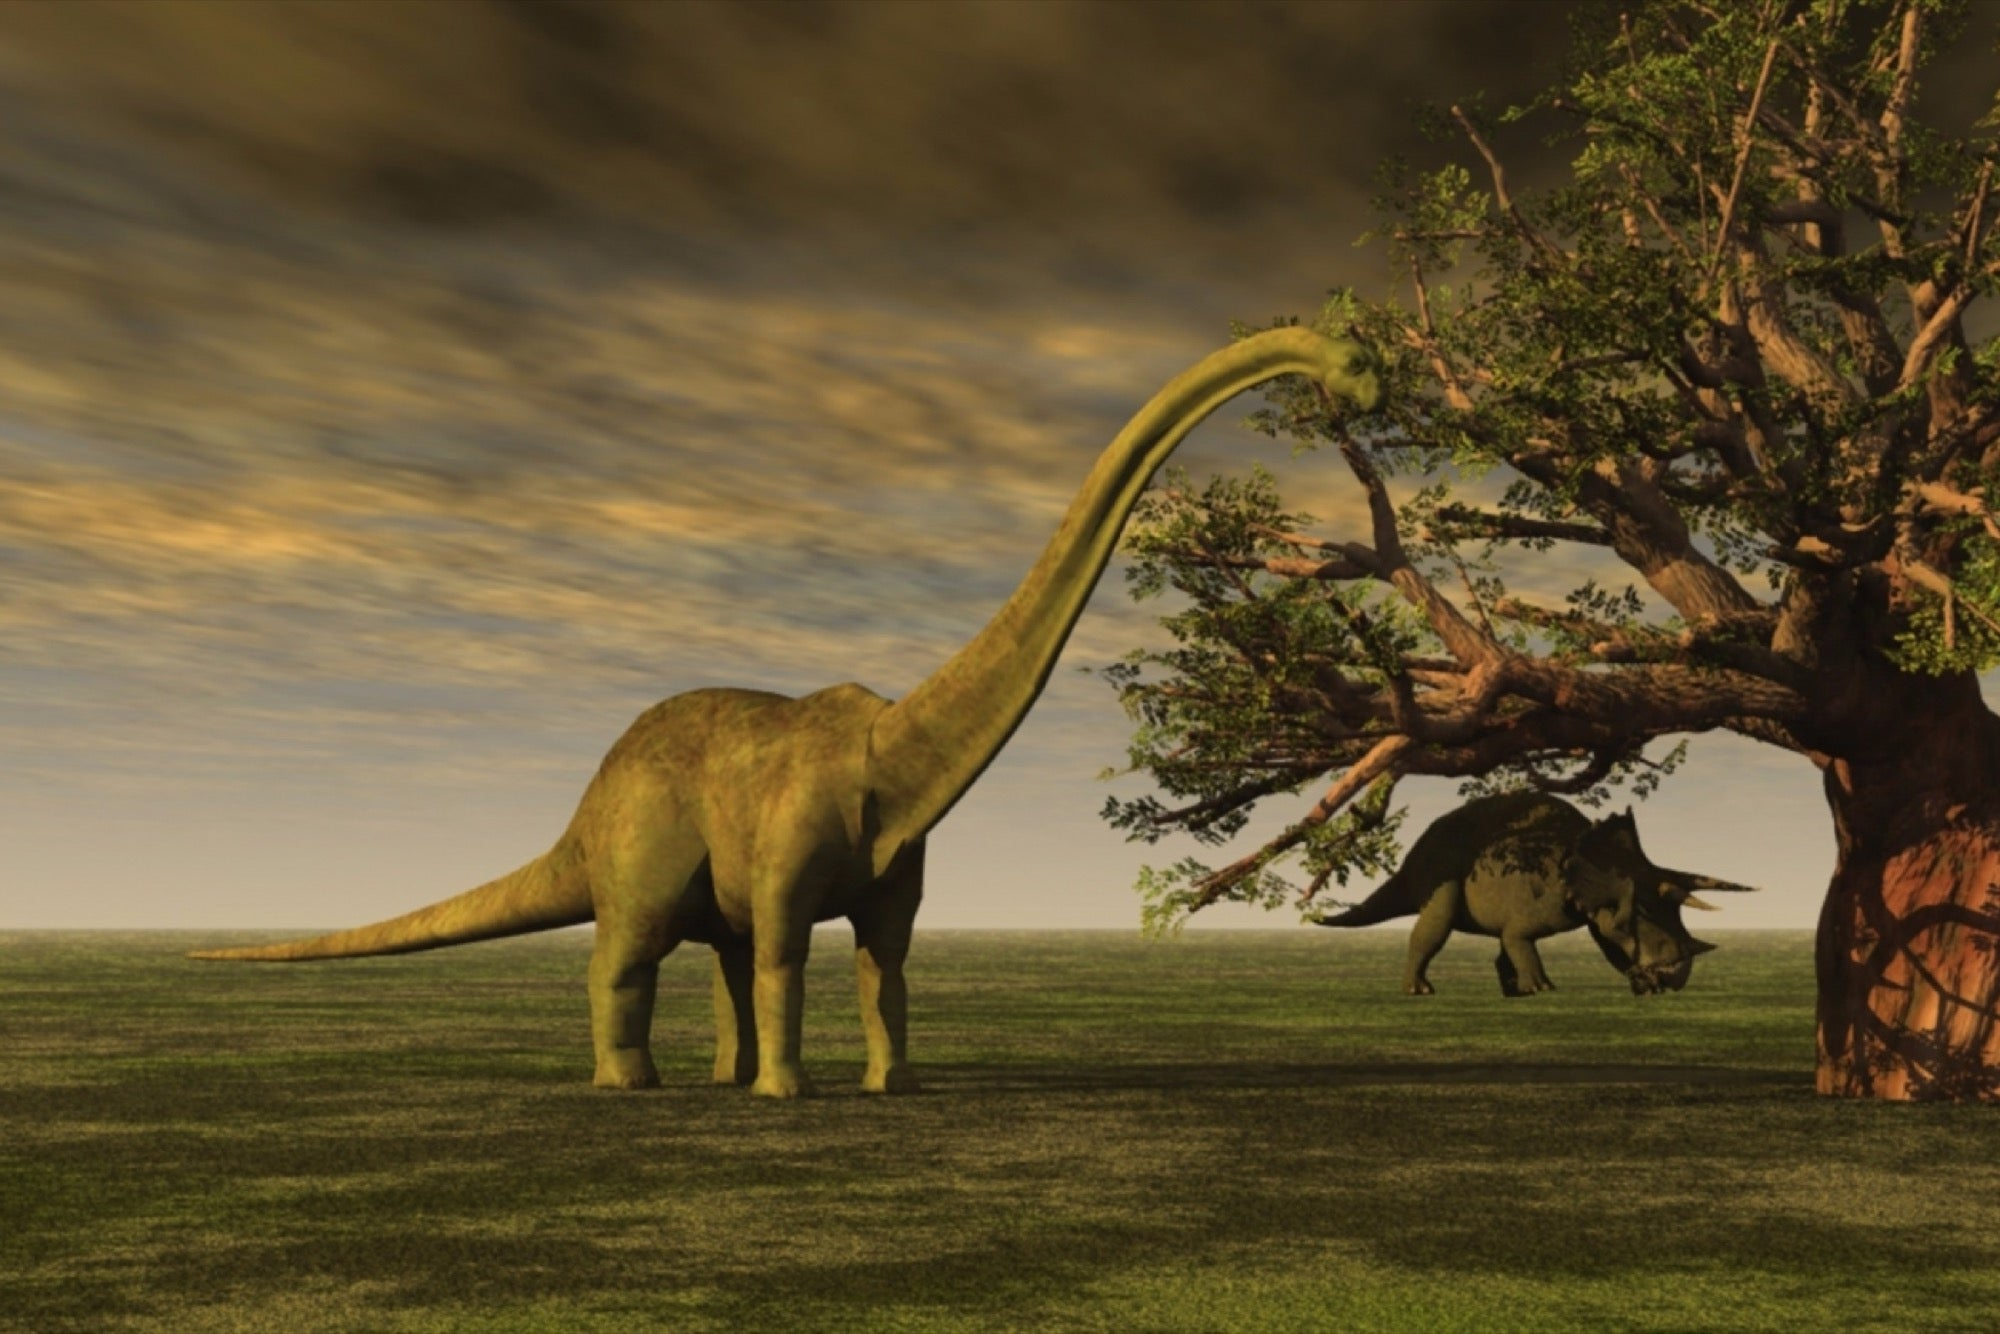 Scientists Say They Can Recreate Living Dinosaurs Within the Next Few Years